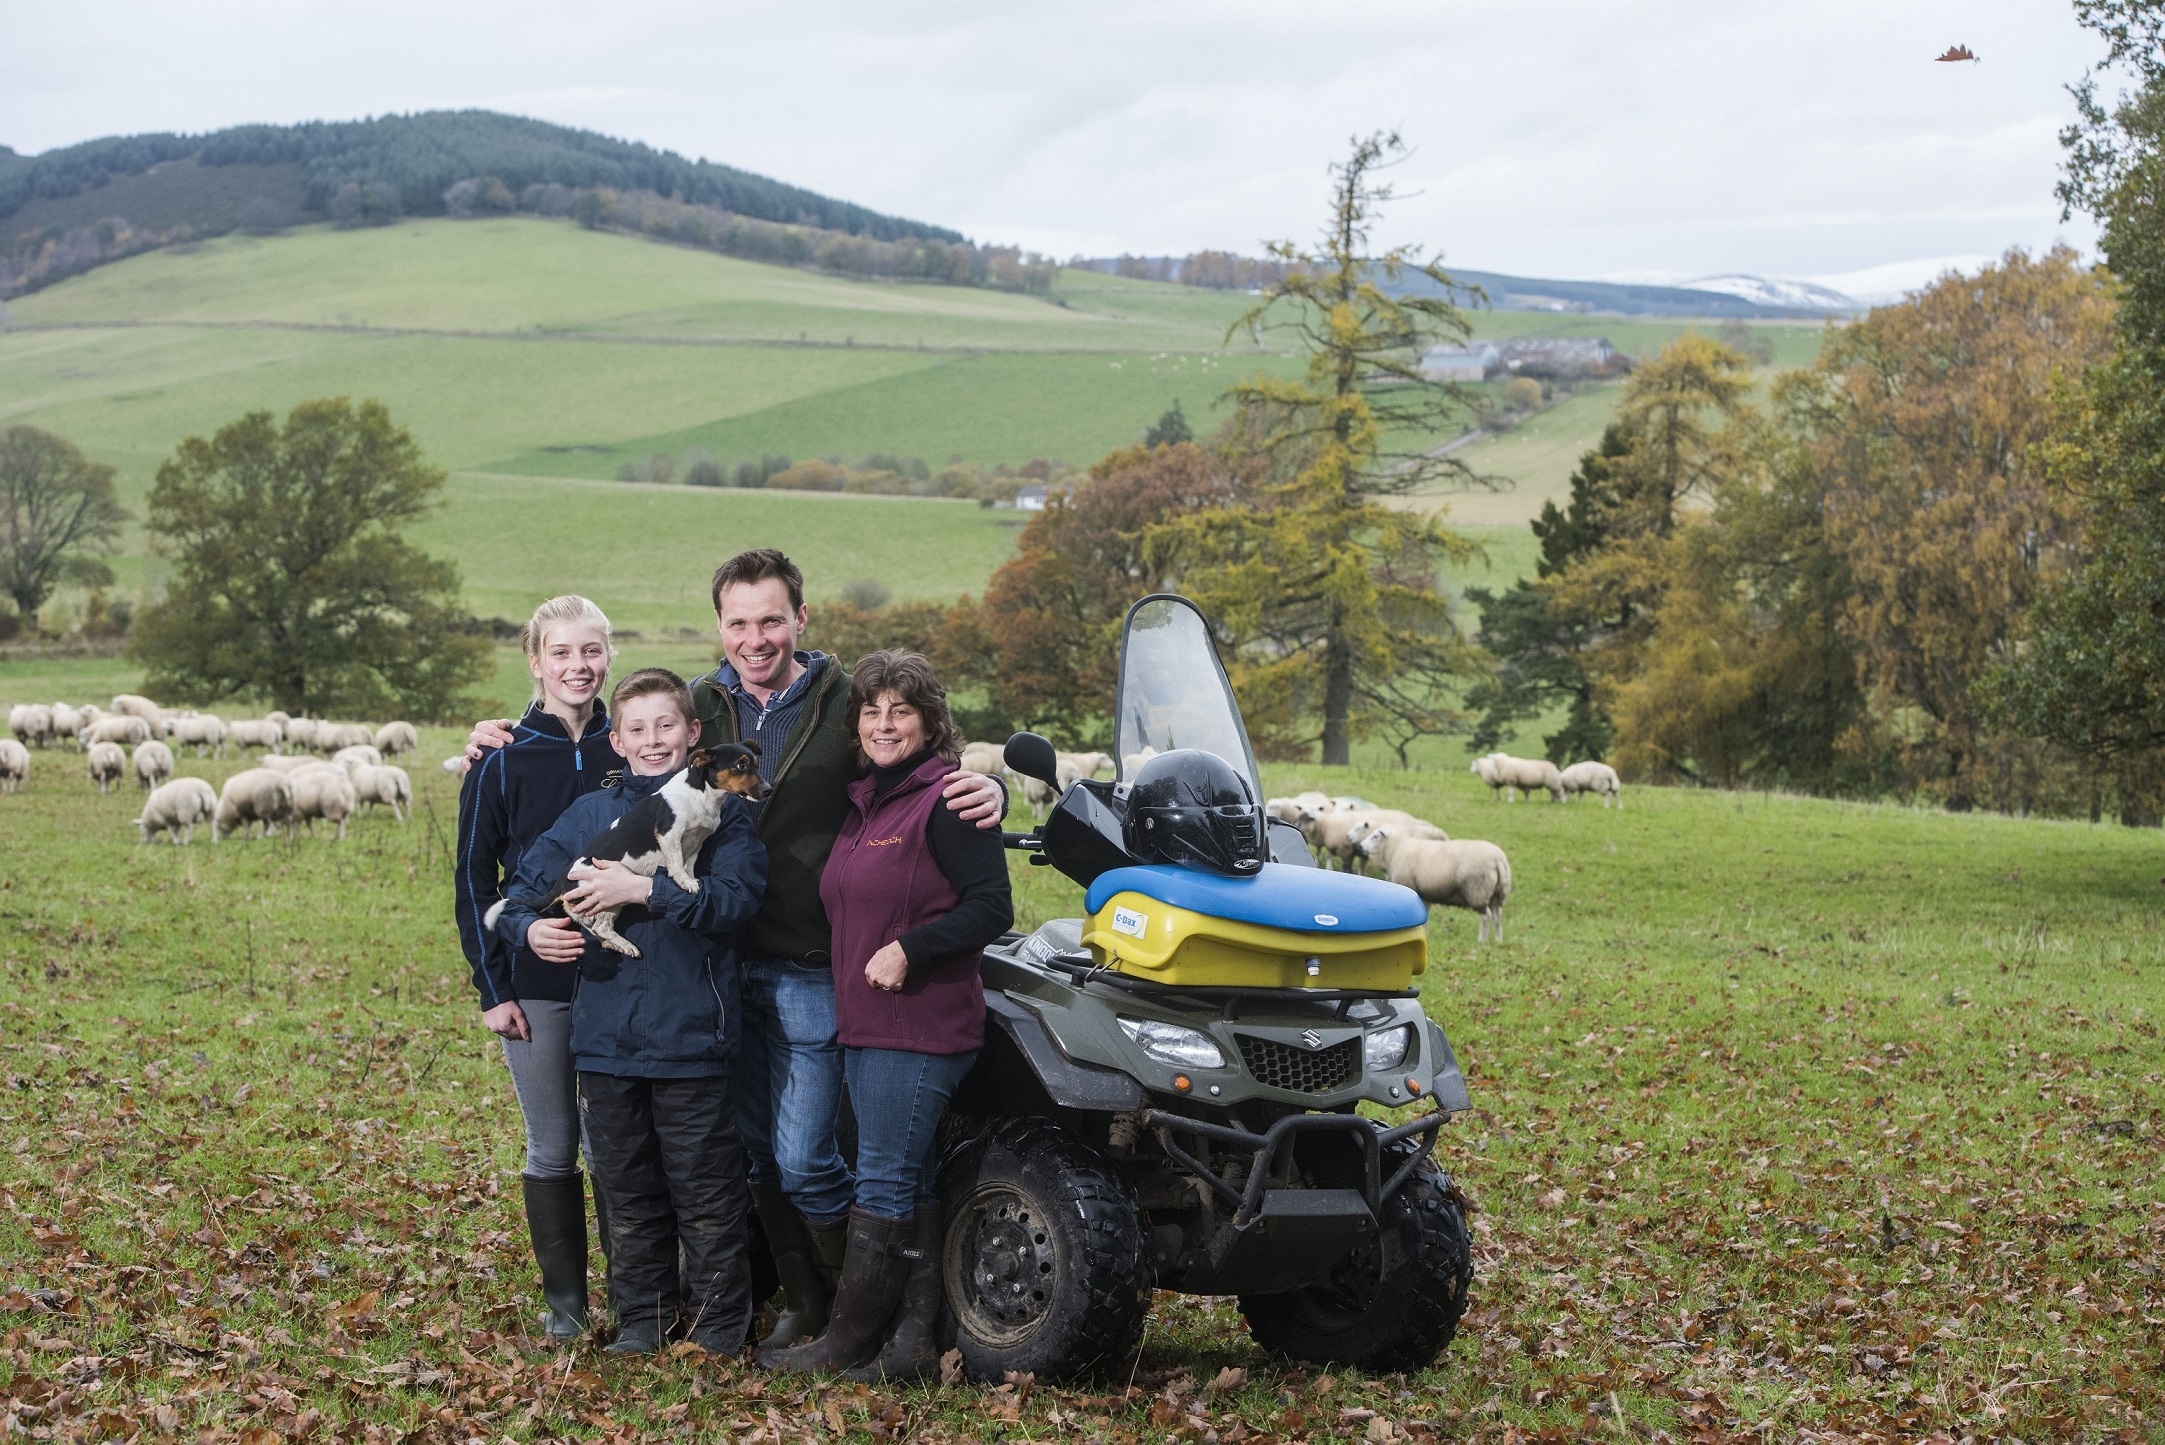 Neil and Debbie McGowan on their farm, Incheoch, with children Tally and Angus and dog Skye.